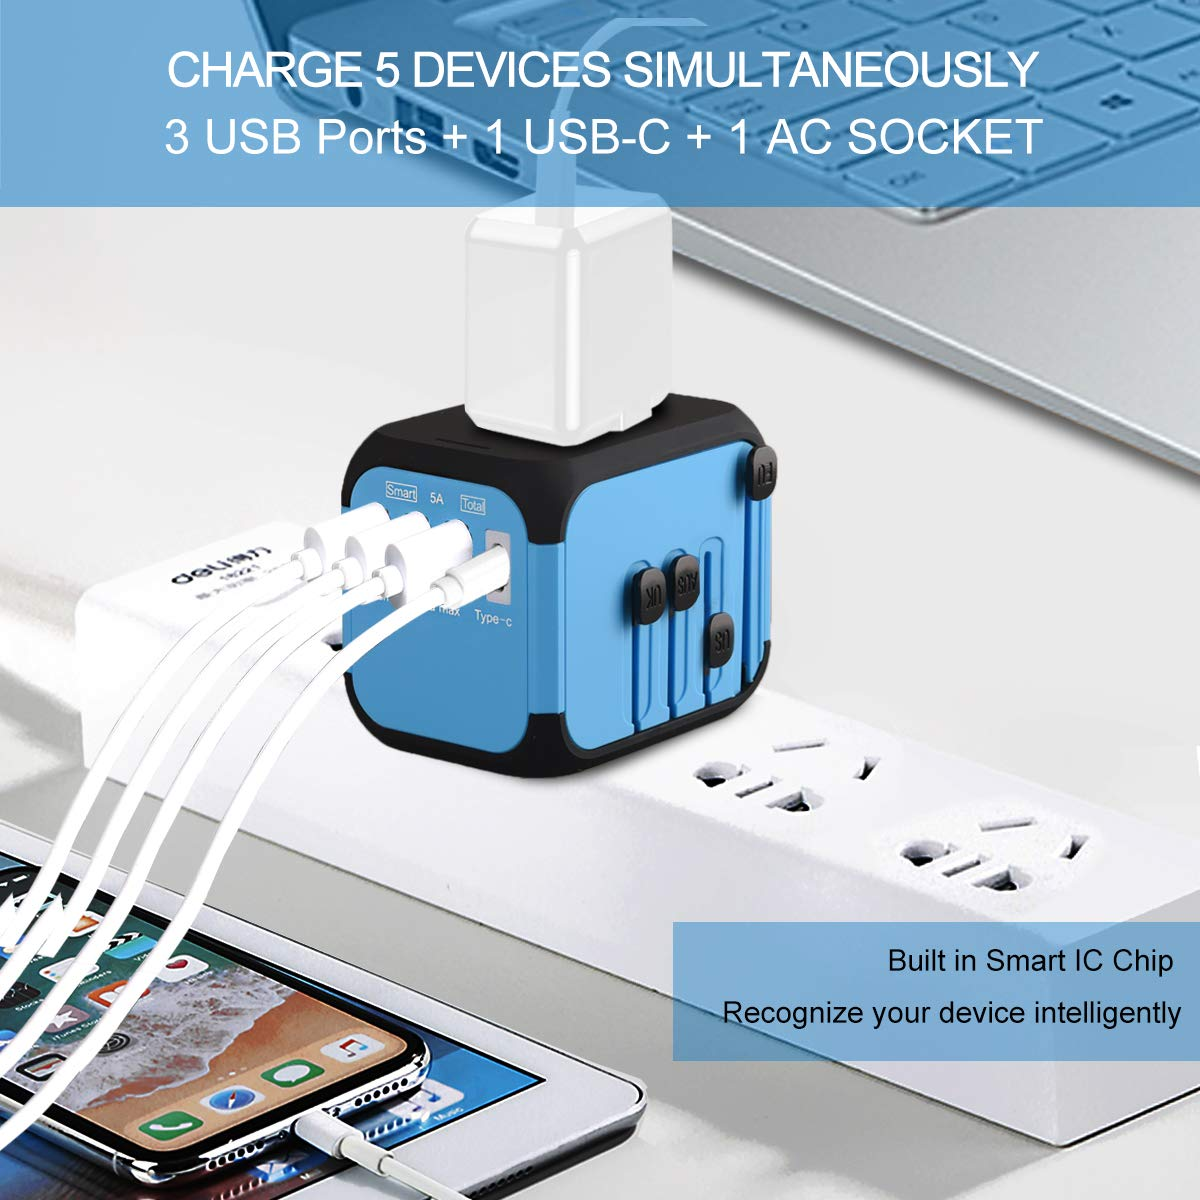 3 USB Ports /& 1 USB-C, Smart Charger 5A Total GOLDFOX Upgraded Universal Travel Adapter with Auto-Reset Fuse Worldwide International Power Adapter w// US UK EU AUS Plugs Electric Outlet Wall Charger AC Plug for Europe Travel Asia 200+ Countries Black